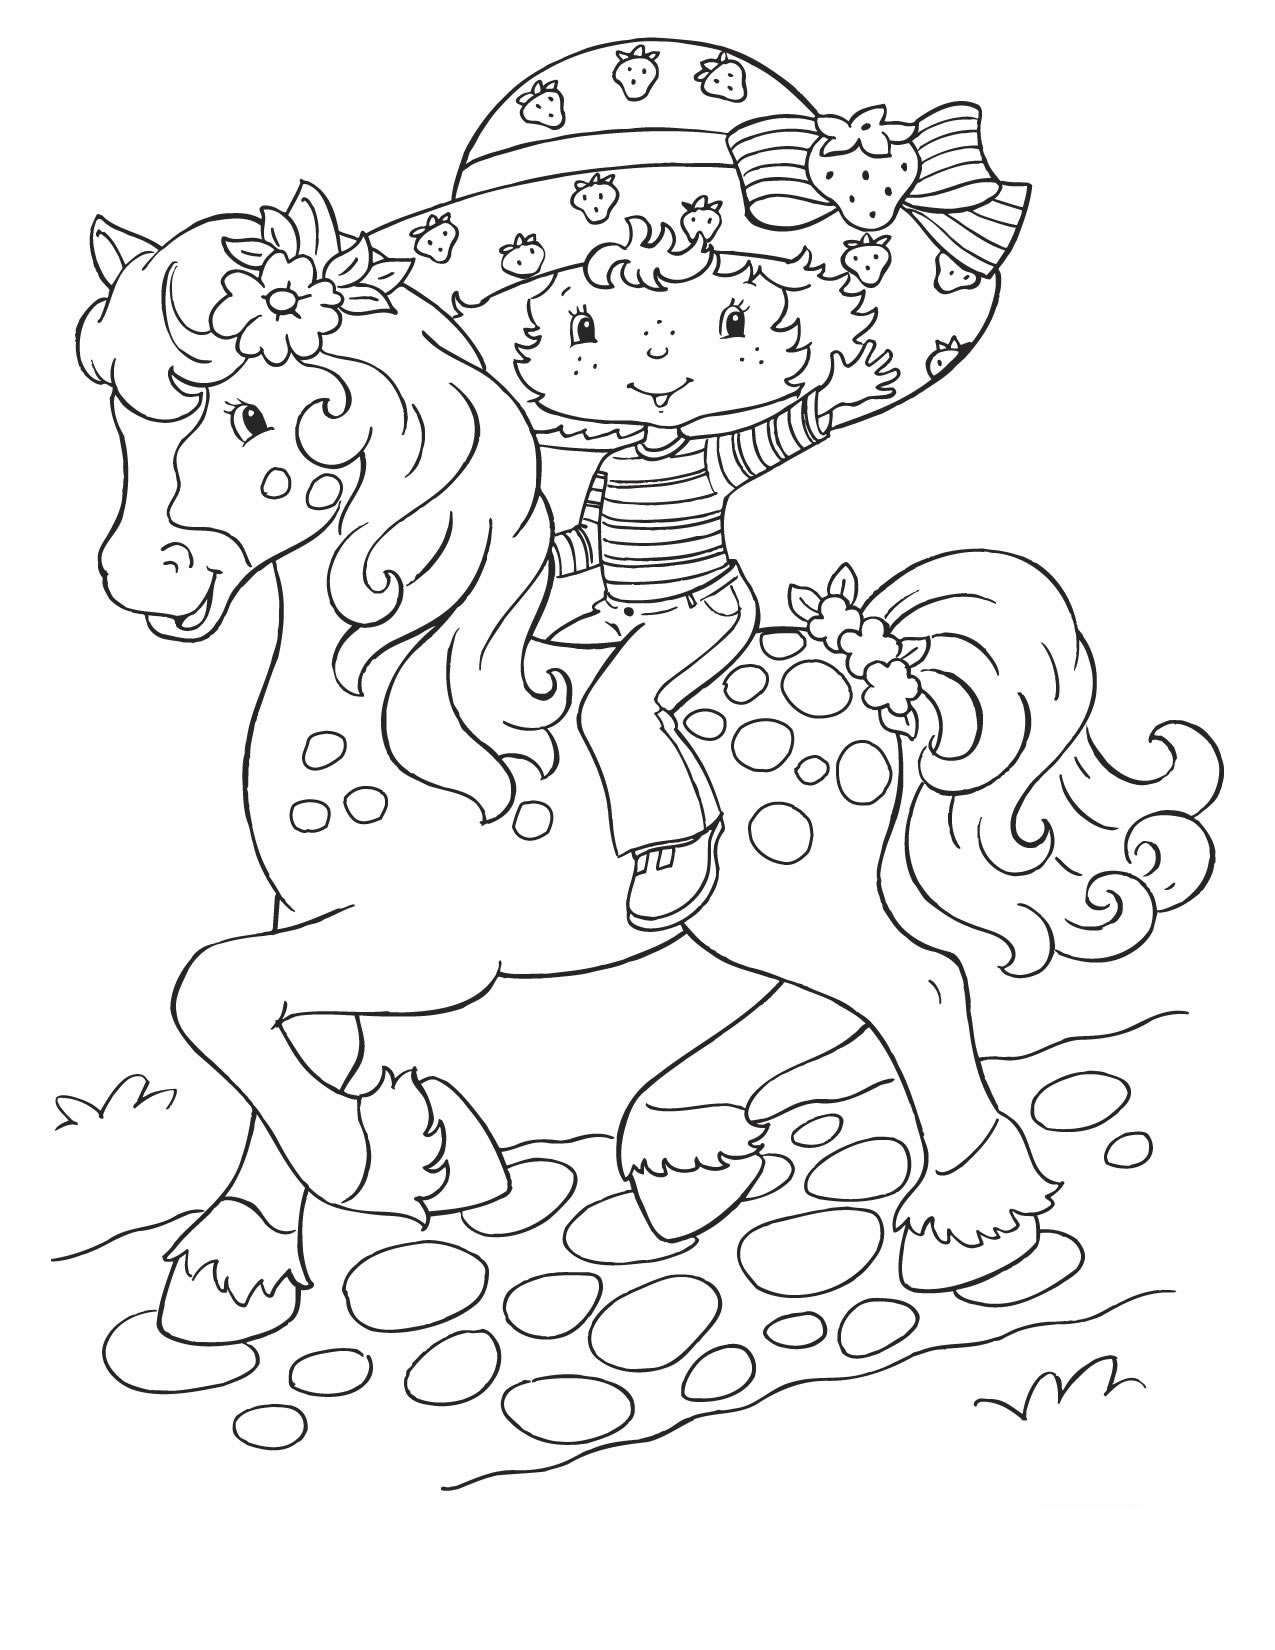 strawberry shortcake coloring pages free - photo#13